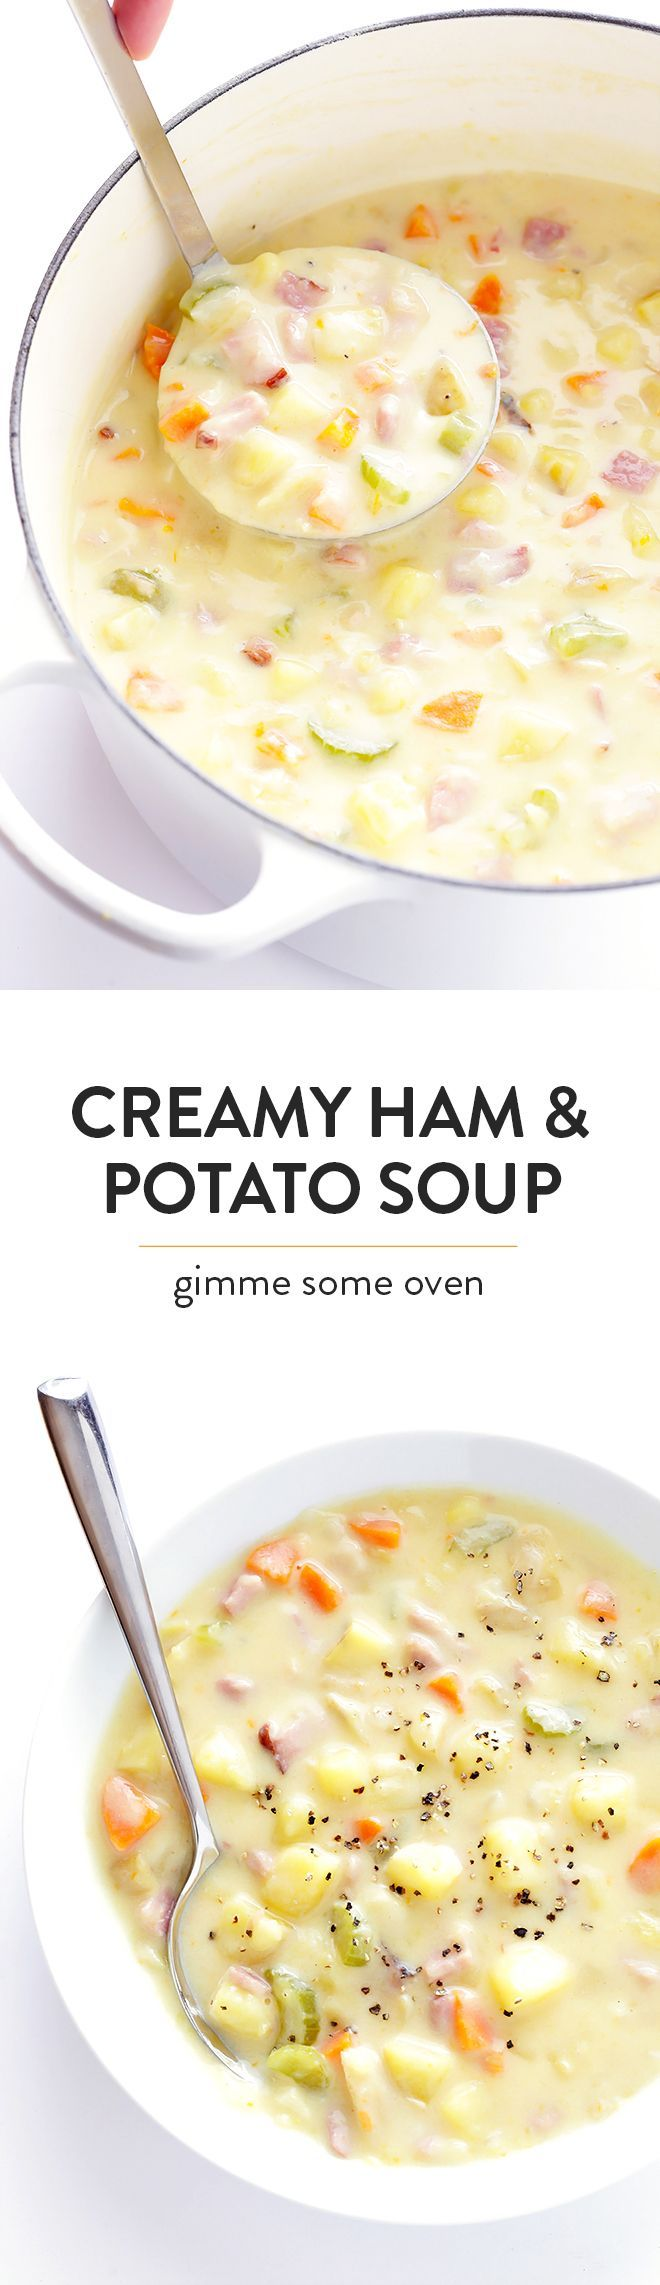 This Creamy Ham and Potato Soup recipe is easy to make, ready to go in about 30 minutes, and SO flavorful and creamy and delicious!